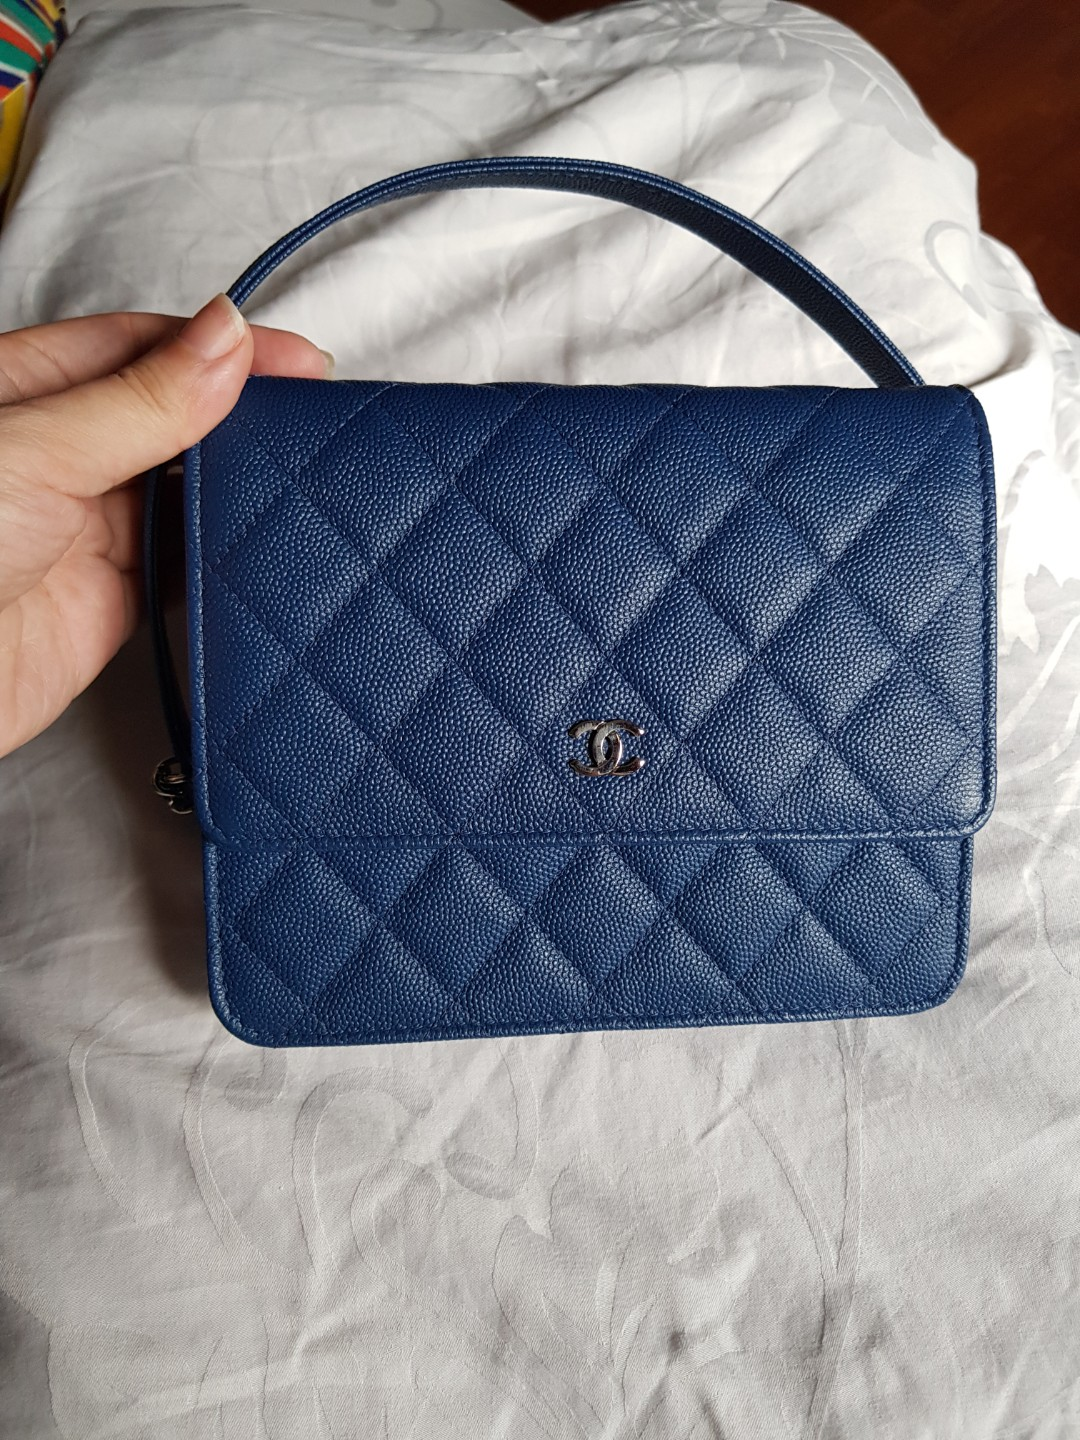 c2eb03ca0166 Authentic Chanel Square WOC, Luxury, Bags & Wallets, Sling Bags on ...